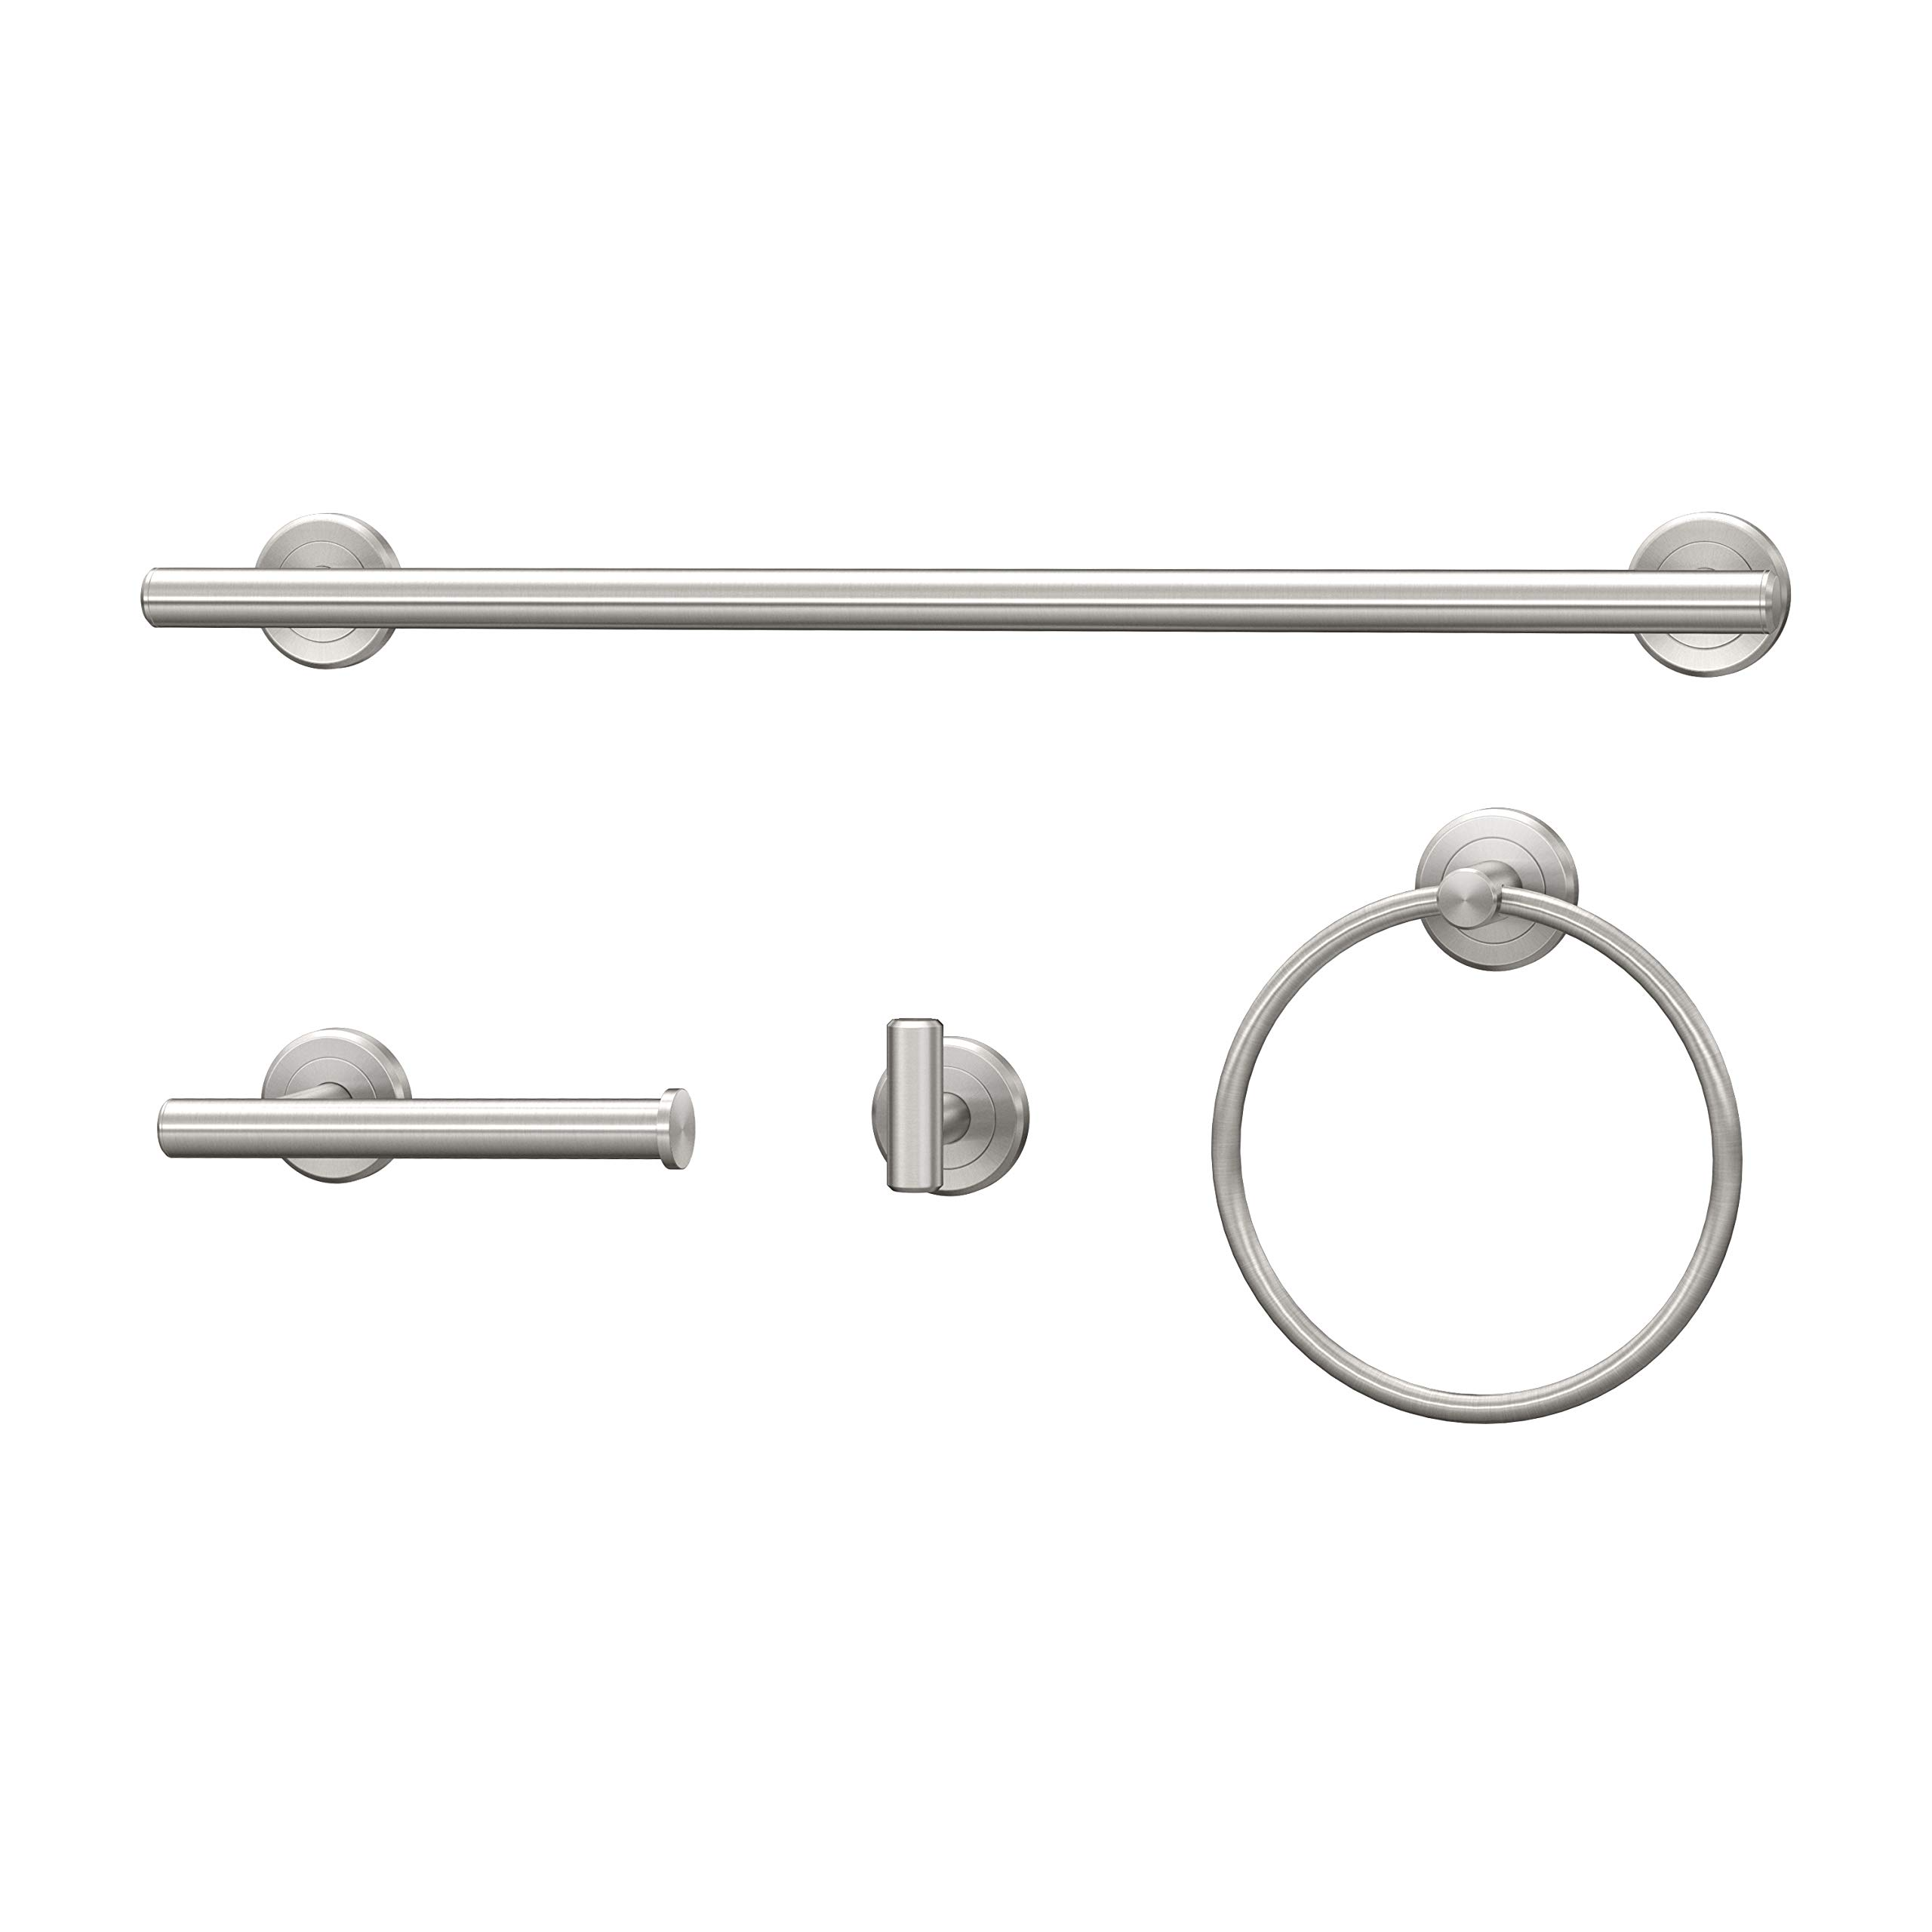 Gatco Latitude II 4-Piece Set, Satin Nickel